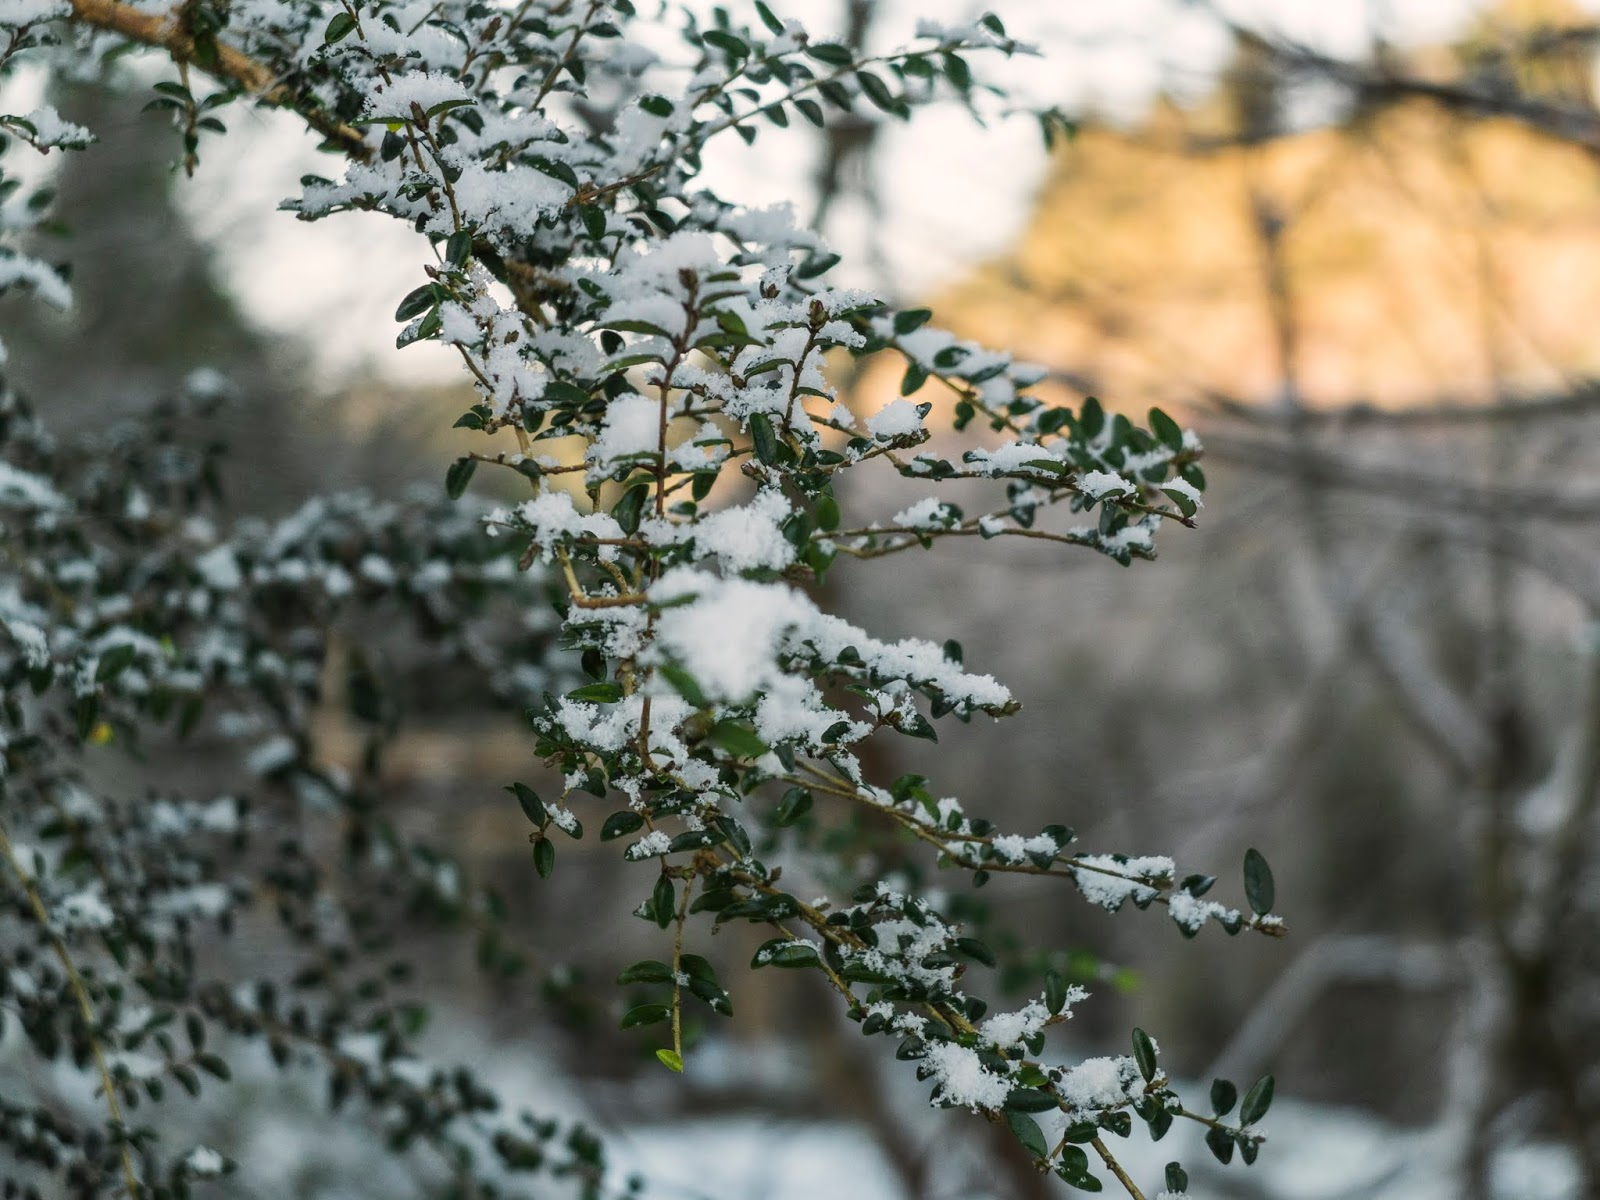 Snow on branches with tiny green leaves on them.